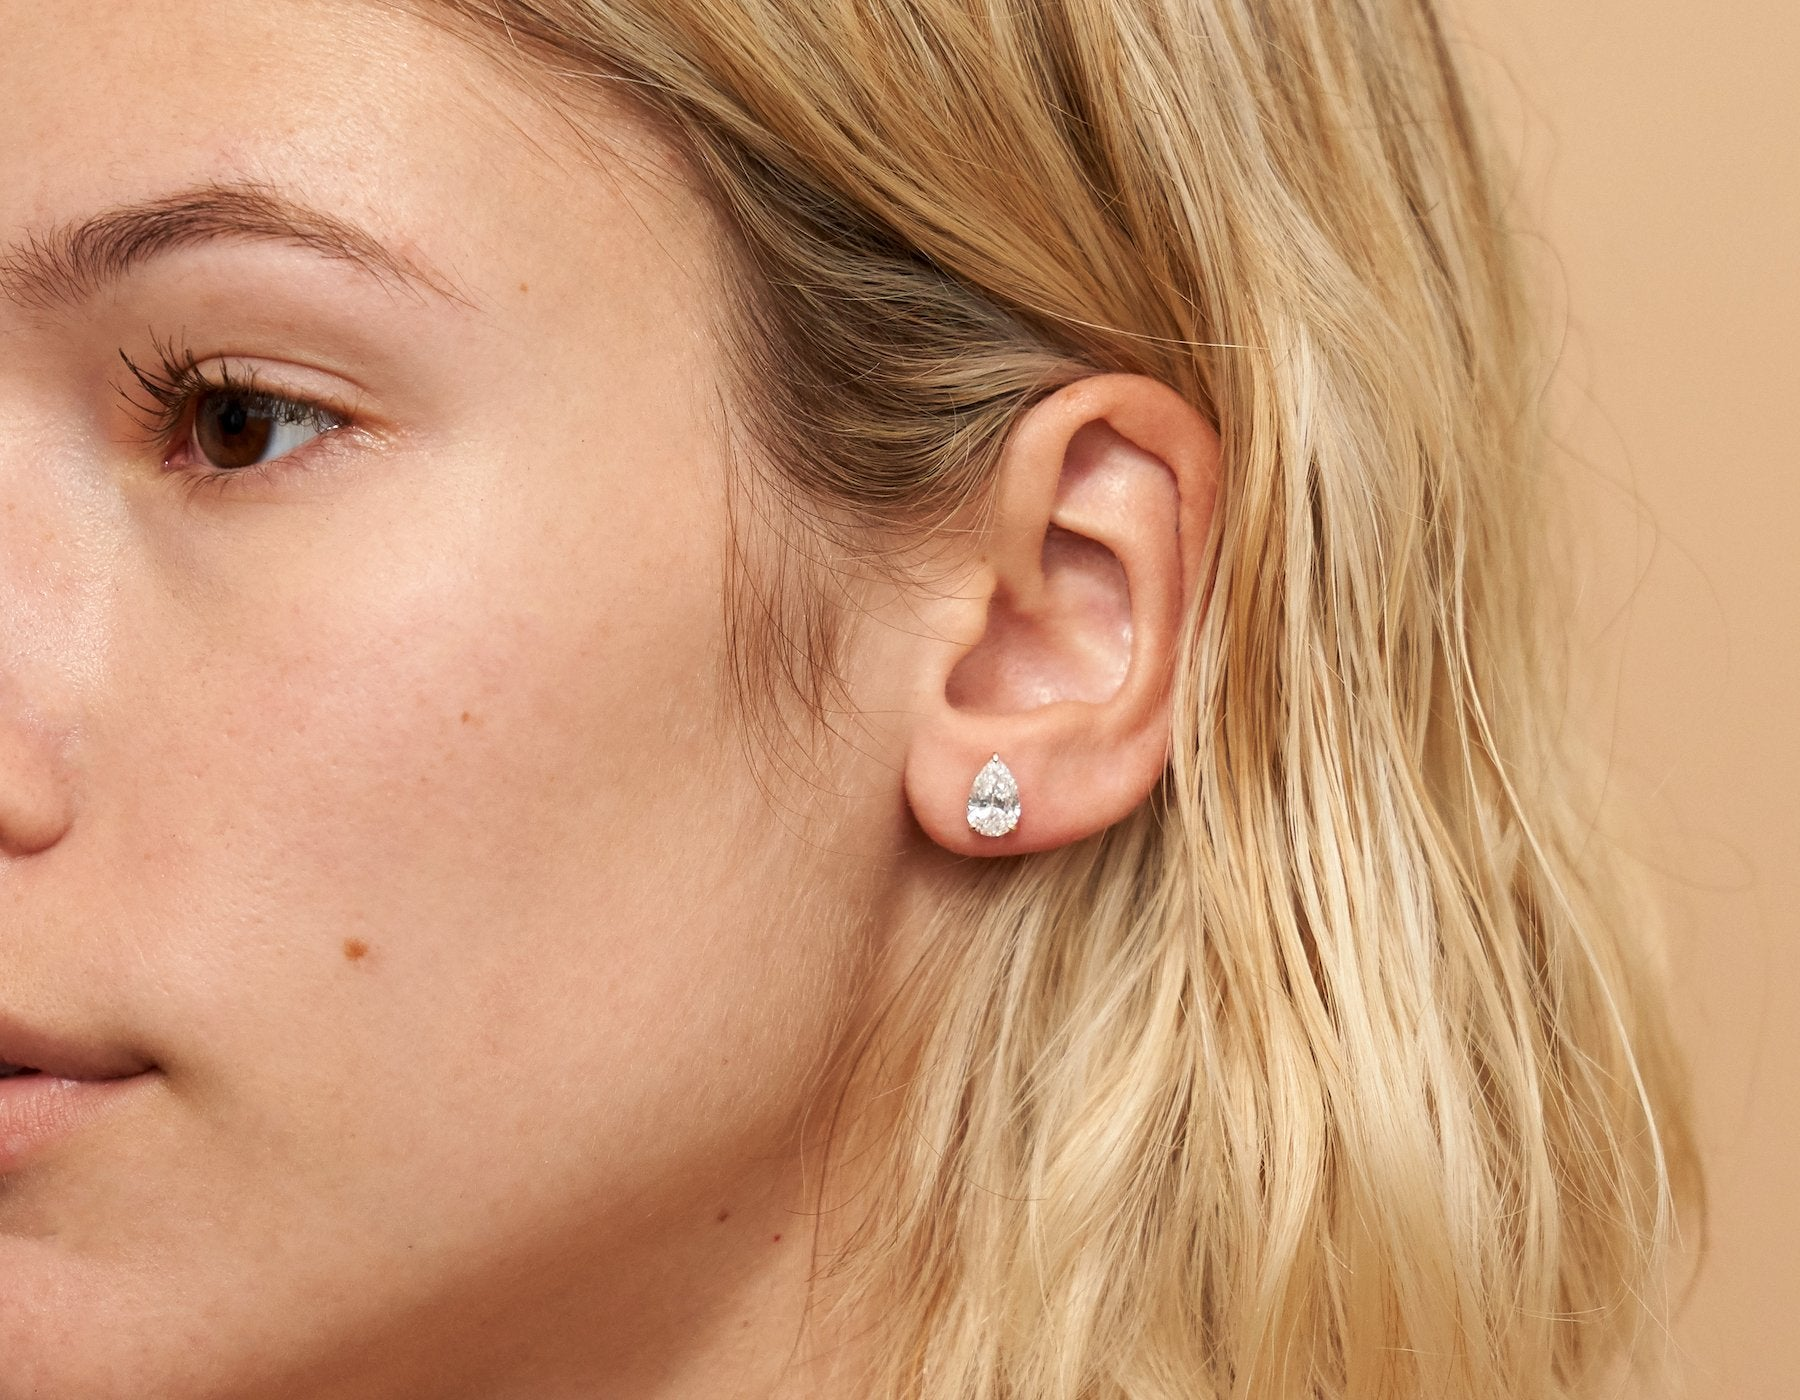 Model wearing Vrai 14K solid gold solitaire pear diamond studs earrings 1ct minimalist delicate, 14K Rose Gold